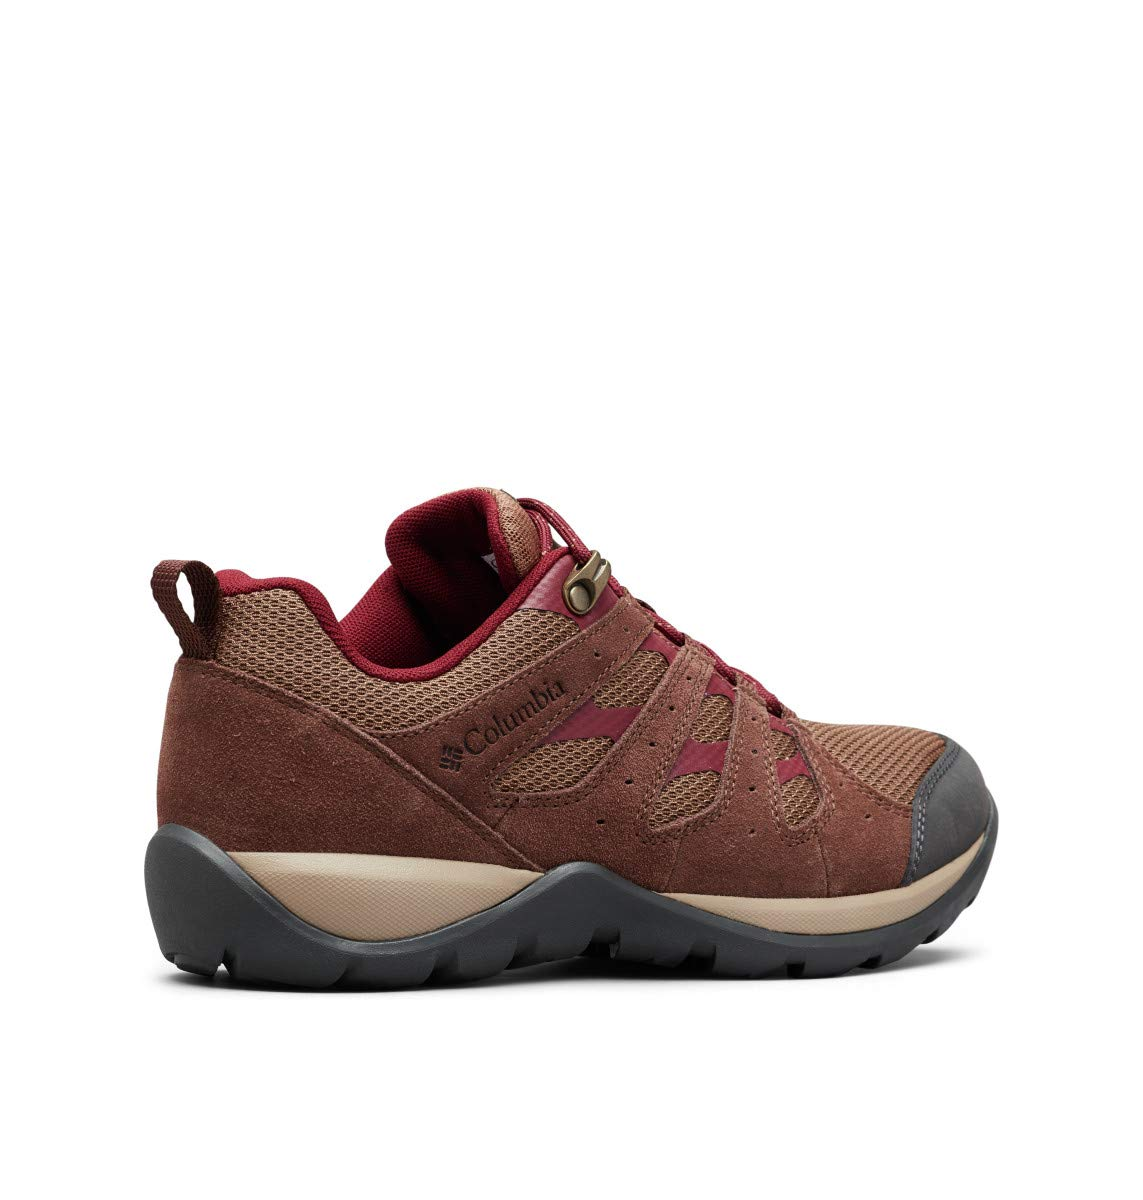 Columbia Women's Redmond V2 Hiking Shoe, Breathable Leather